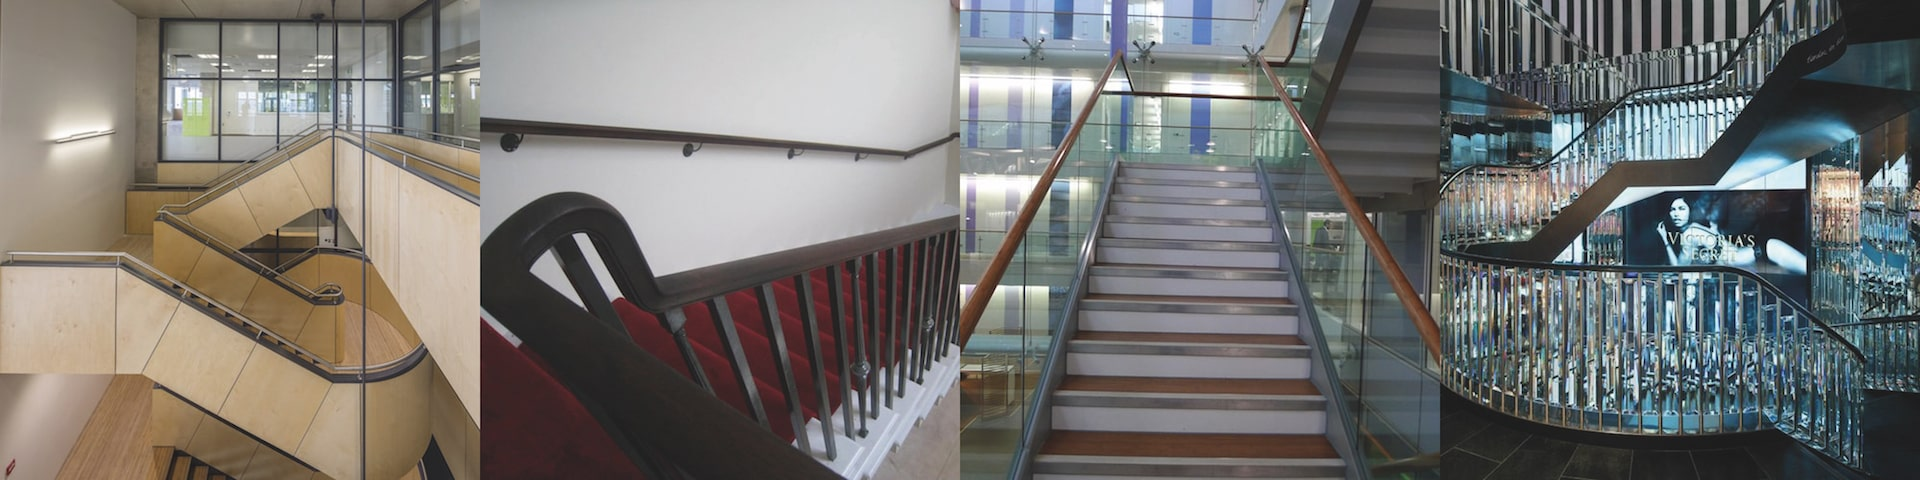 Images of commercial handrails London